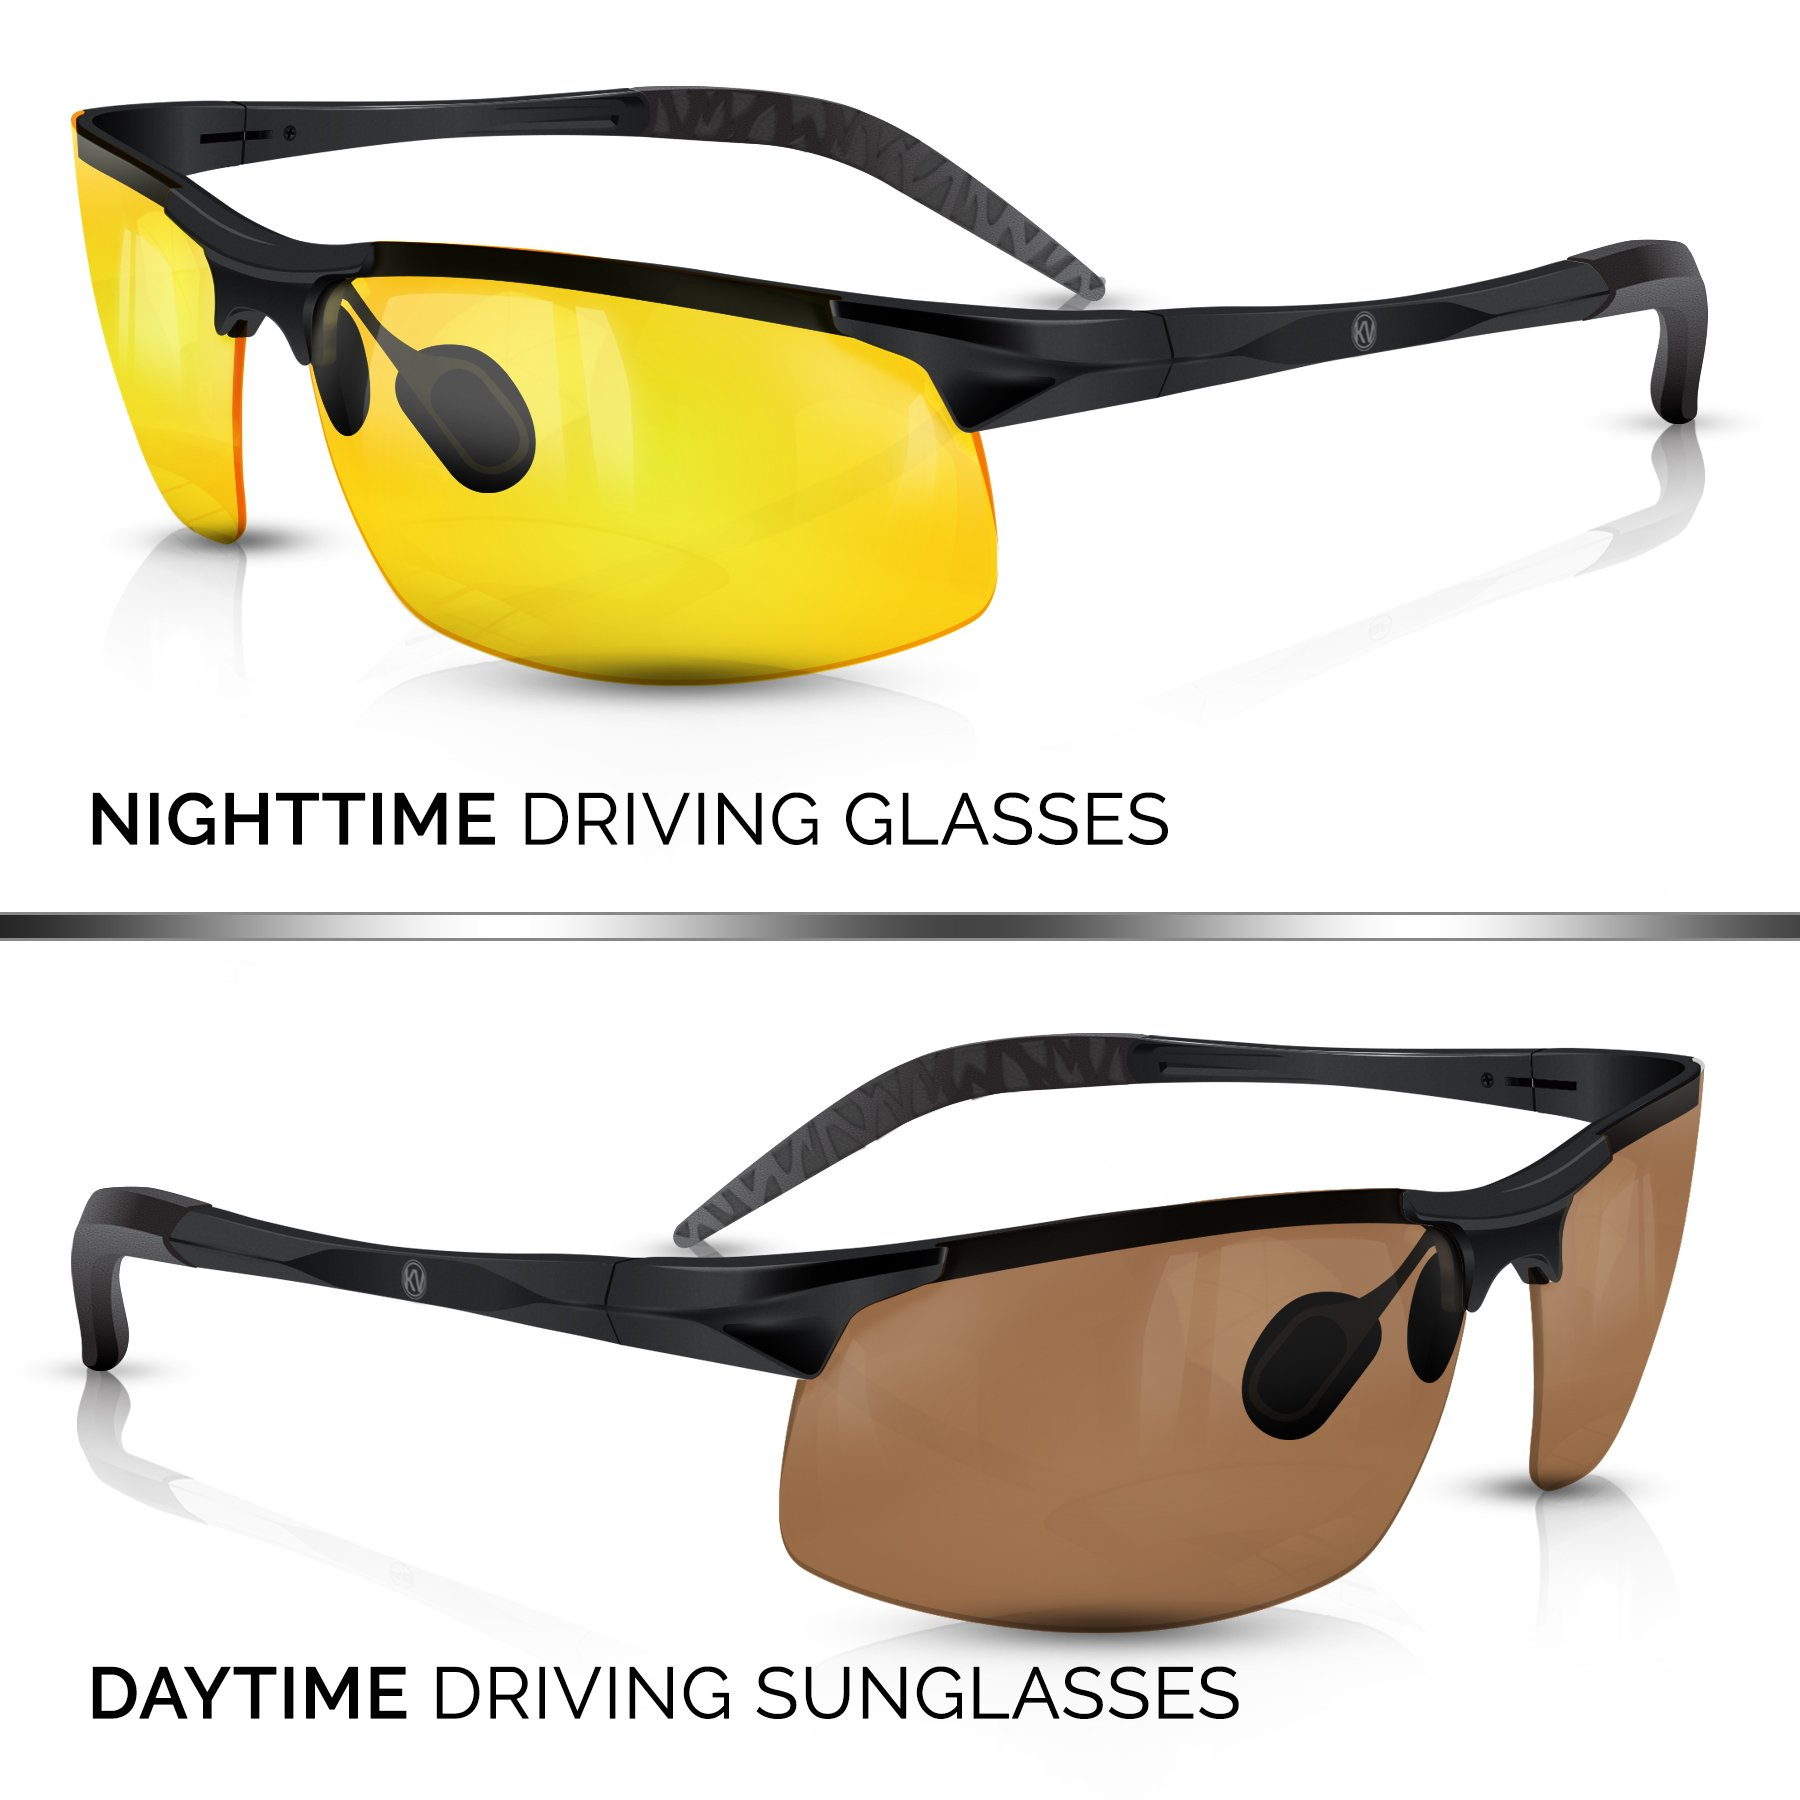 BLUPOND KNIGHT VISOR Set of 2 - Driving Glasses Anti-Glare HD Vision - Yellow Lens Night Driving Glasses Plus Copper Daytime Driving Sunglasses for Hunting, Fishing, Cycling, PLUS CAR CLIP HOLDER by BLUPOND